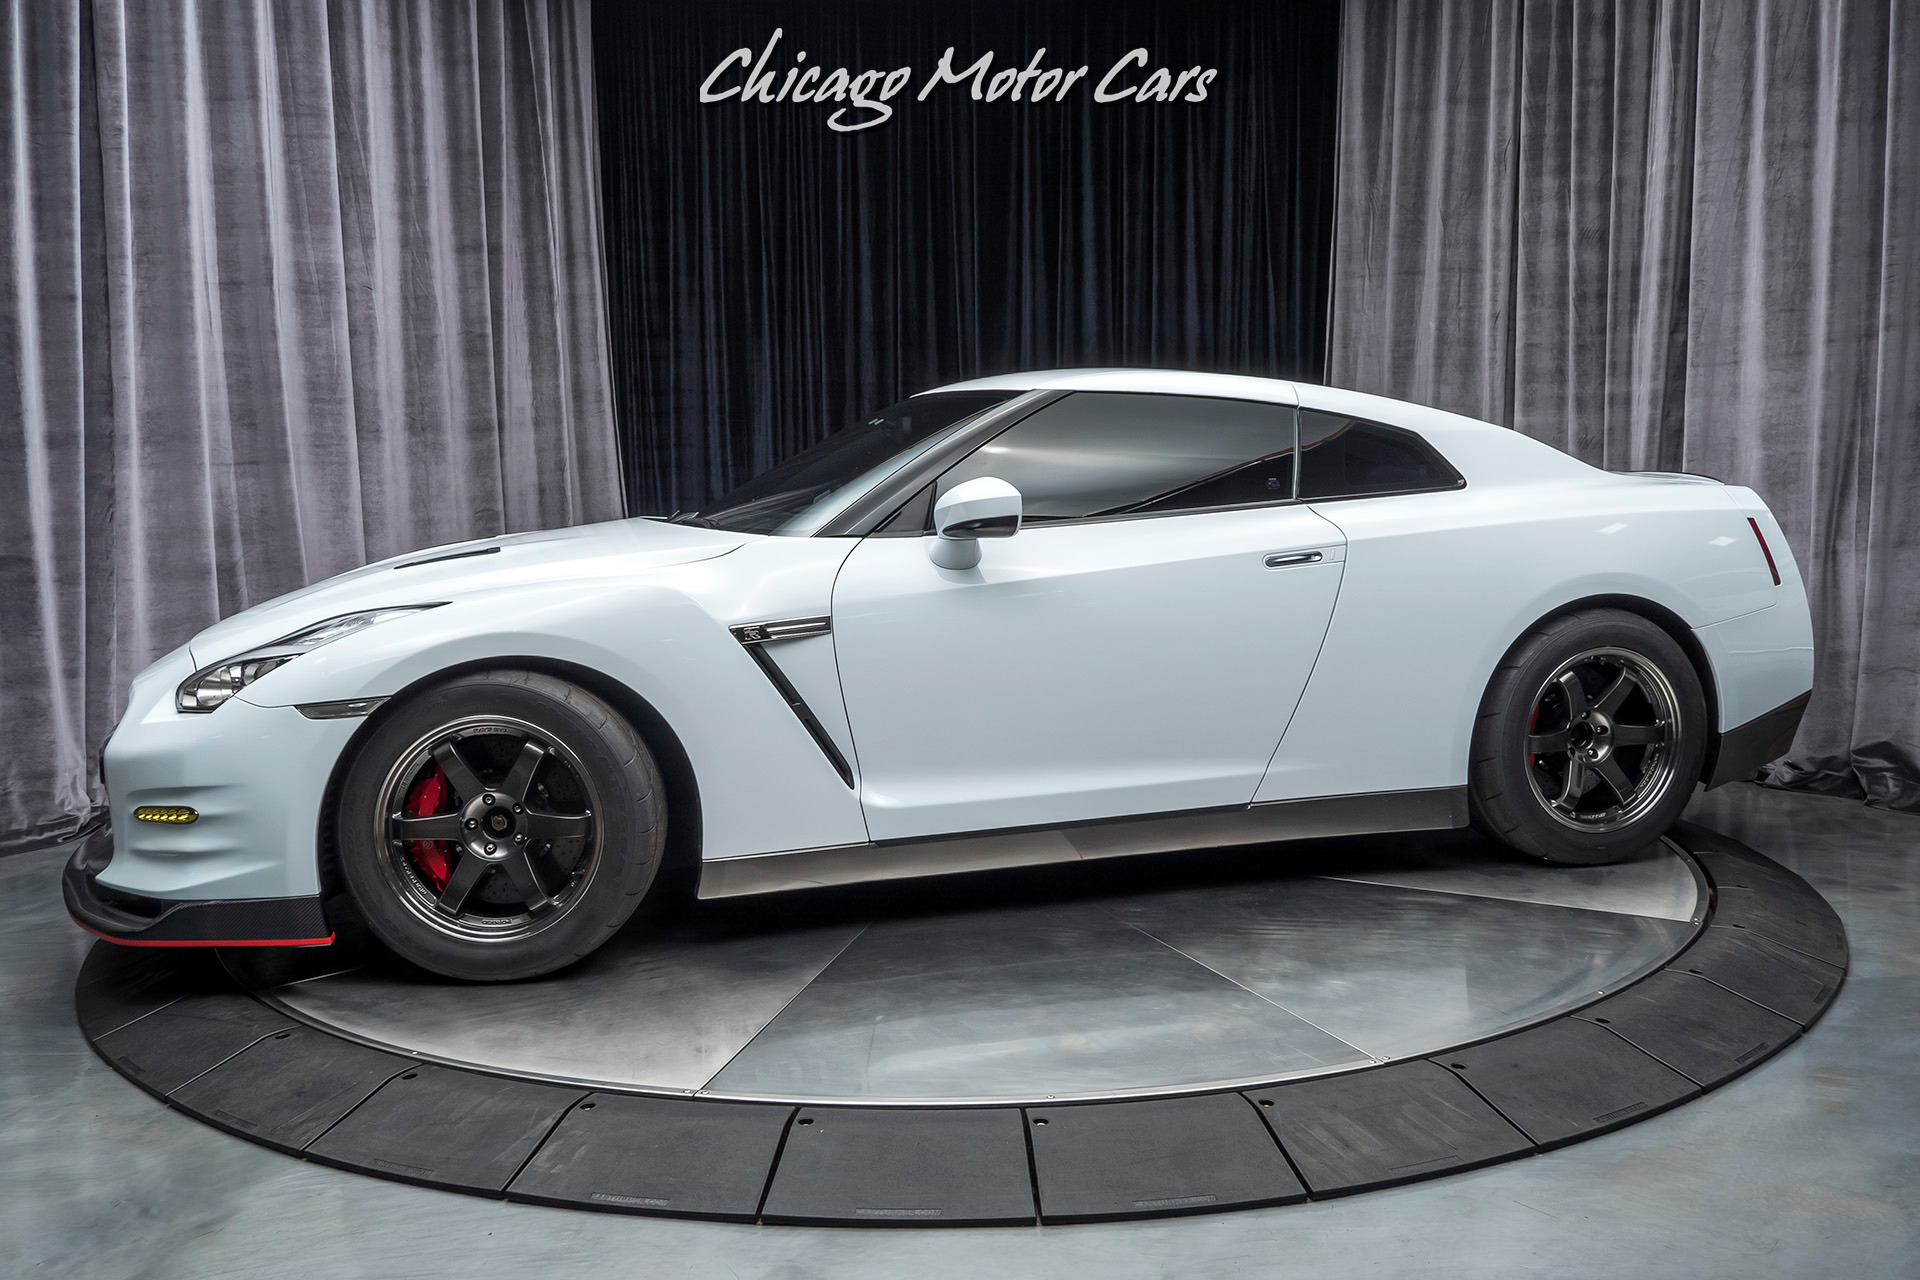 Used-2010-Nissan-GT-R-Premium-Coupe-1300-WHP-ONLY-20-MILES-ON-THE-ENGINE